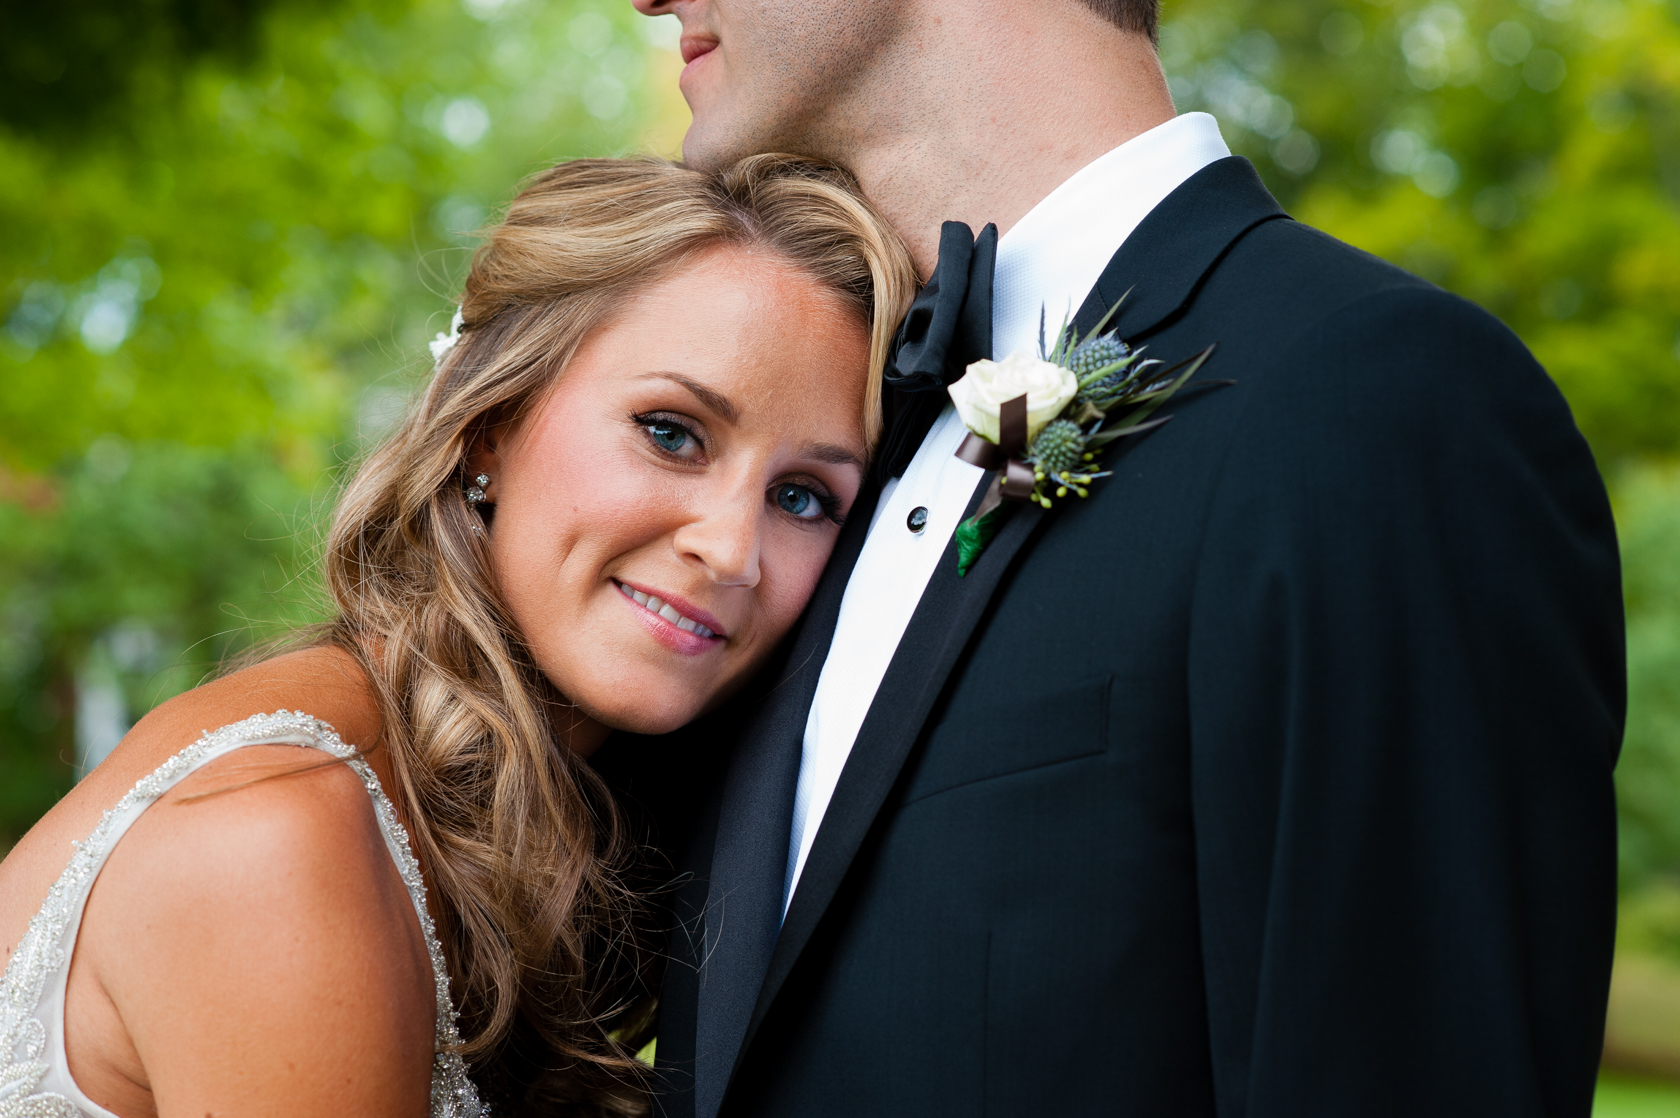 beautiful bride rests her head on her new husbands chest